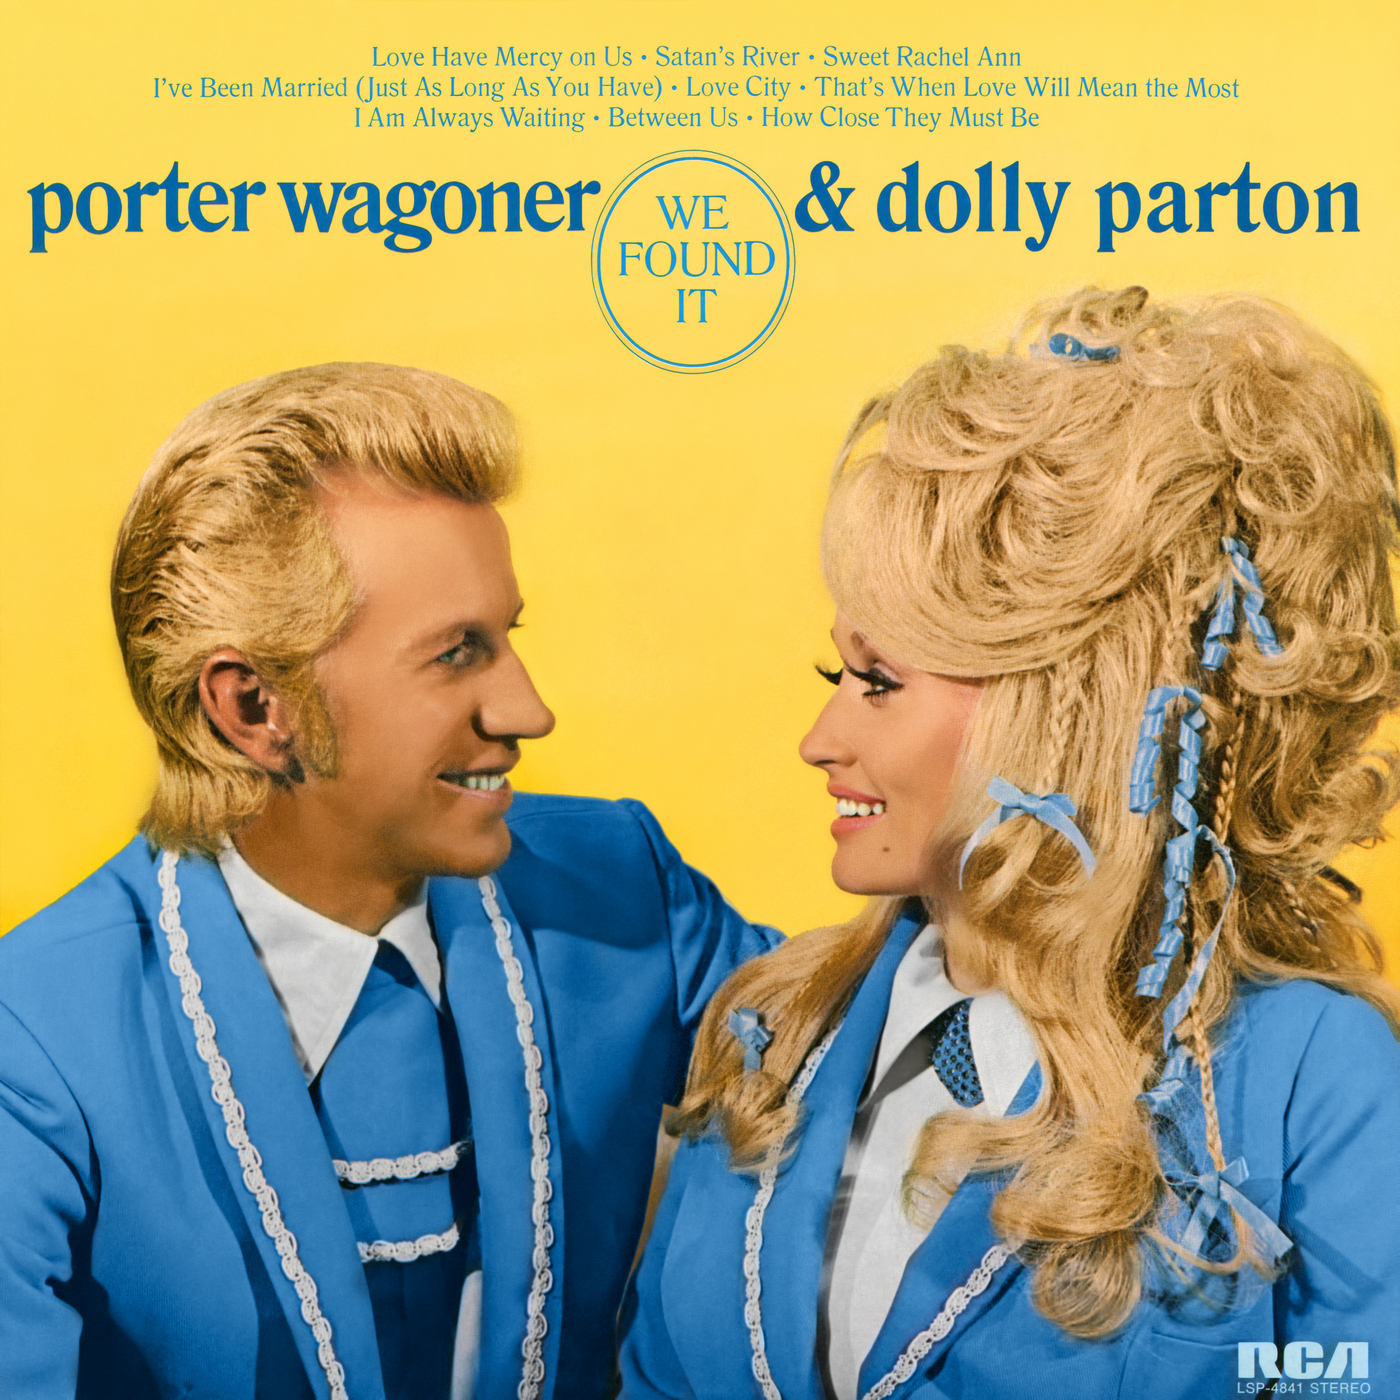 We Found It - Porter Wagoner